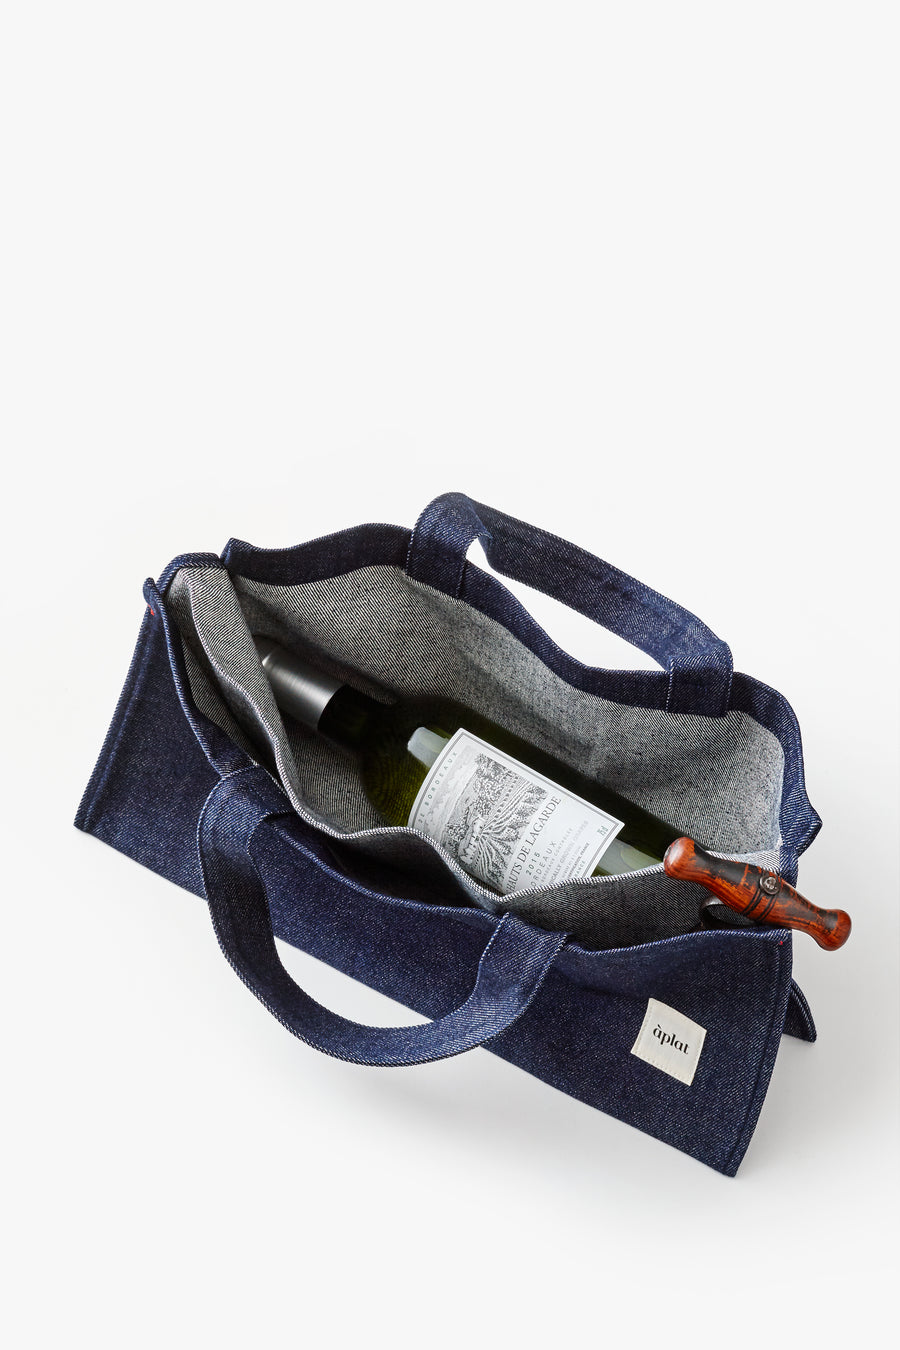 Vin Horizontal Tote | Denim